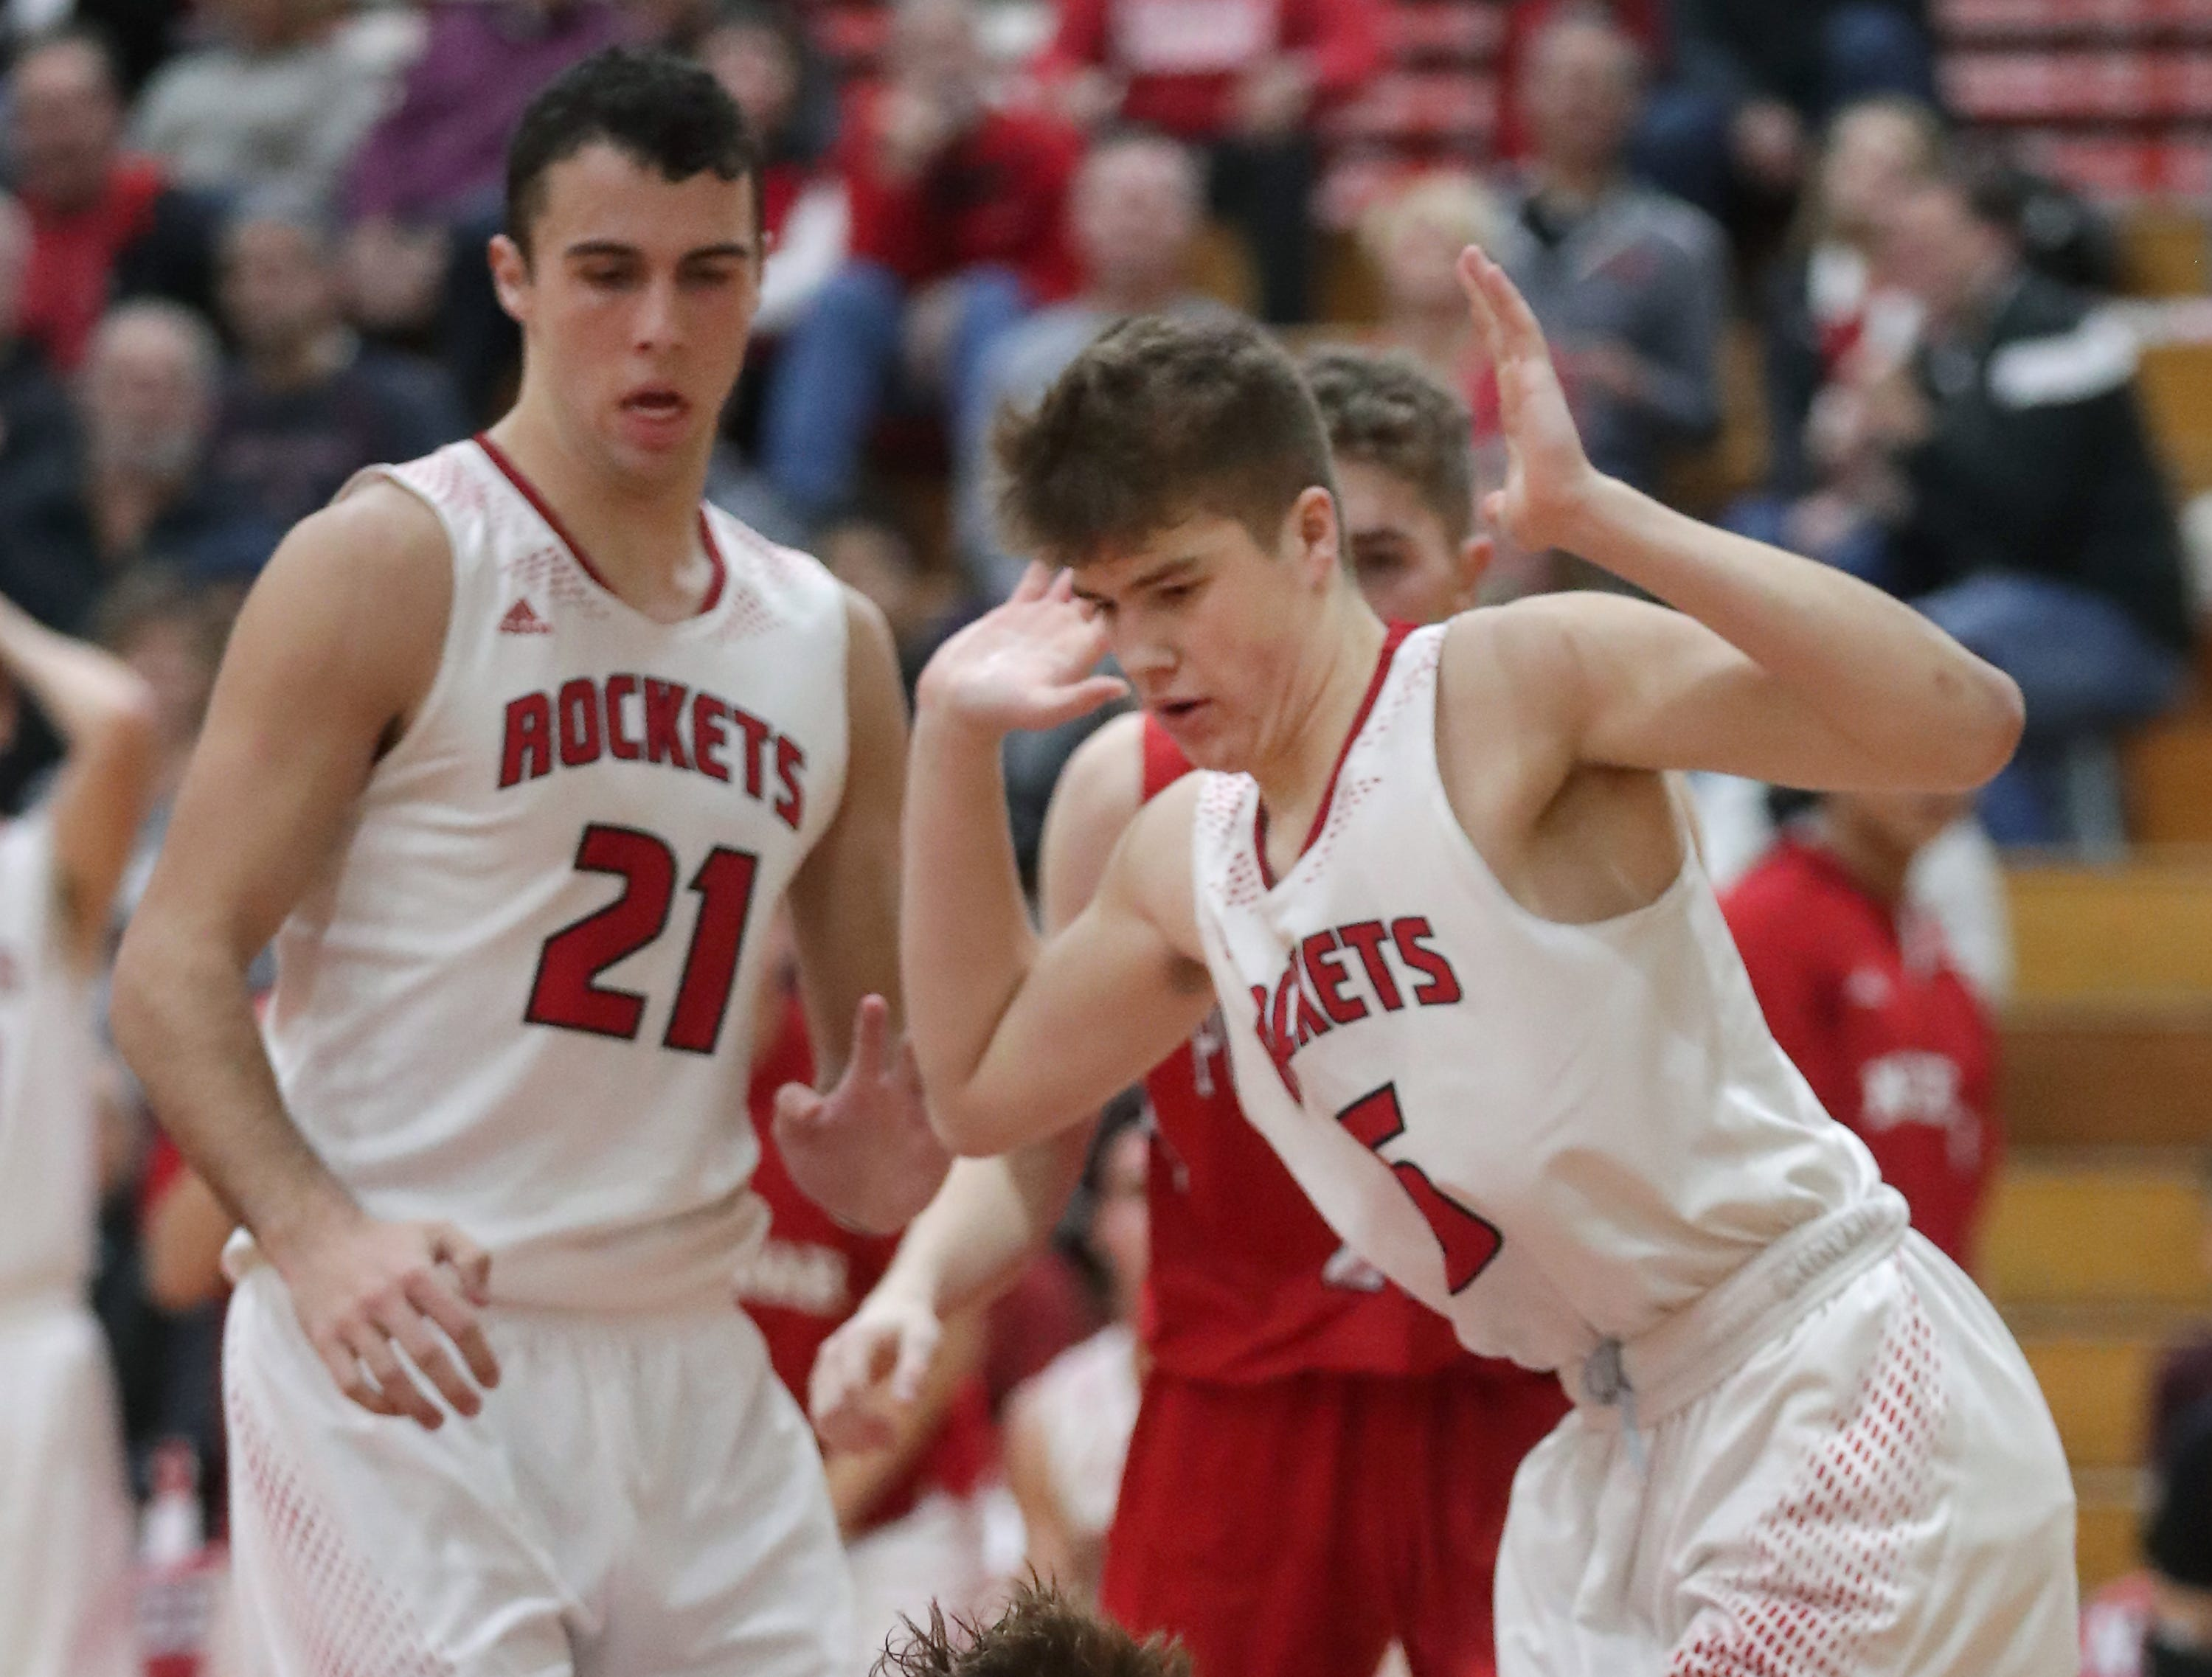 Hortonville High School's #10 Mason Thiel against Neenah High School's #5 Max Klesmit during their Fox Valley Association boys basketball game on Friday, November 30, 2018, in Neenah, Wis. Neenah defeated Hortonville 71 to 67 in overtime.Wm. Glasheen/USA TODAY NETWORK-Wisconsin.